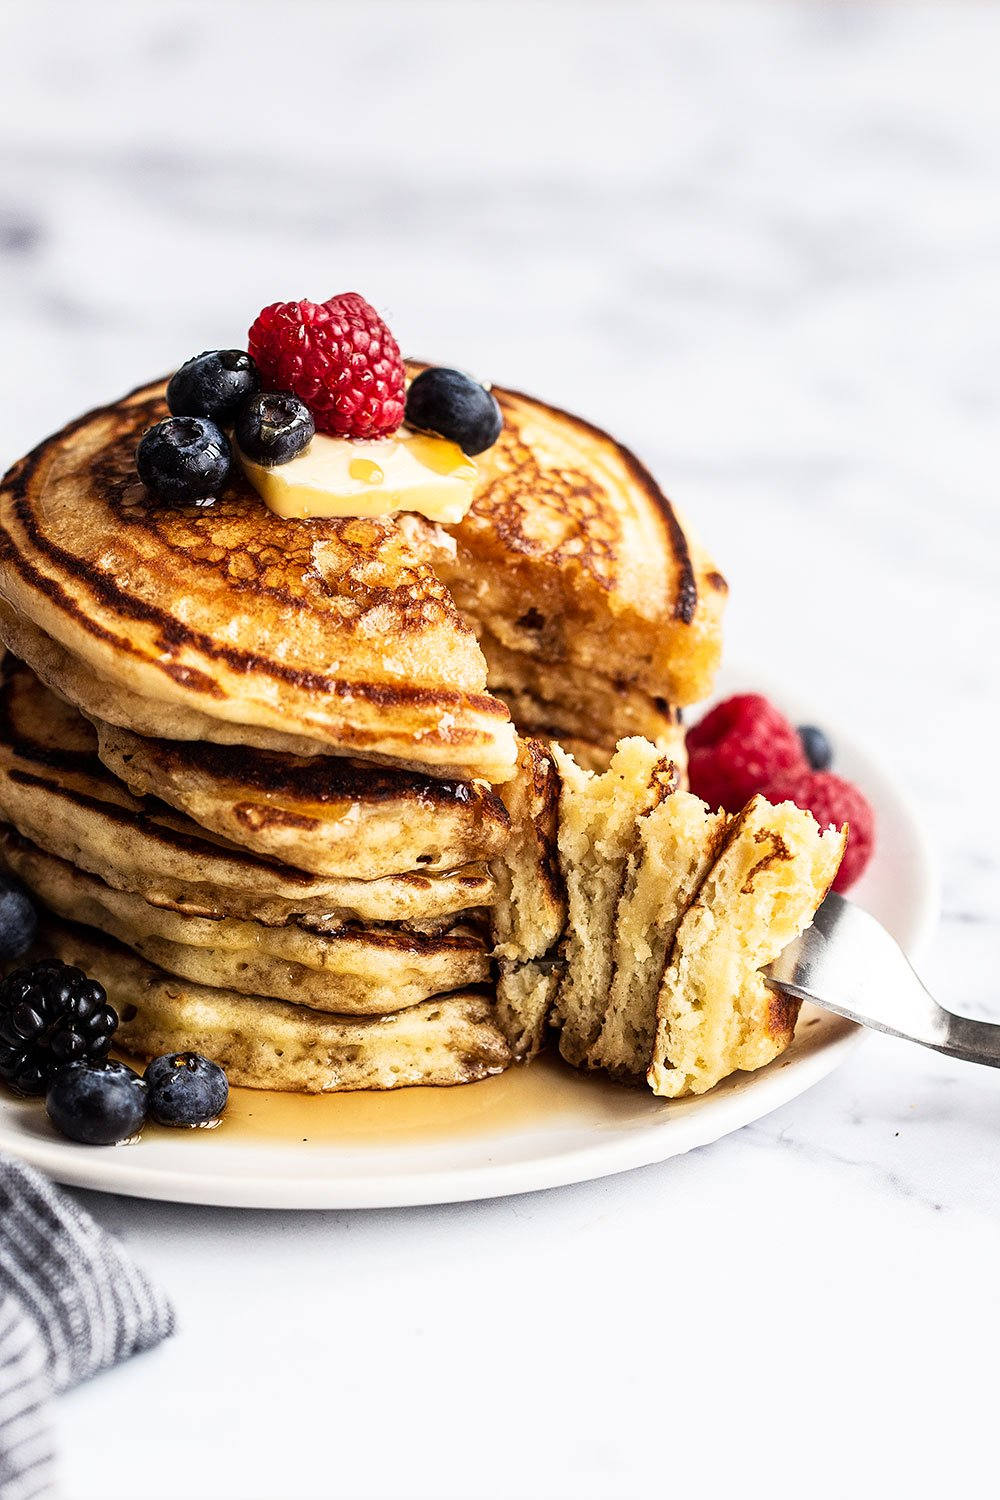 Easy Homemade Buttermilk Pancakes We Make These Every Sunday In 2020 Best Pancake Recipe Homemade Buttermilk Pancakes Pancake Recipe Buttermilk